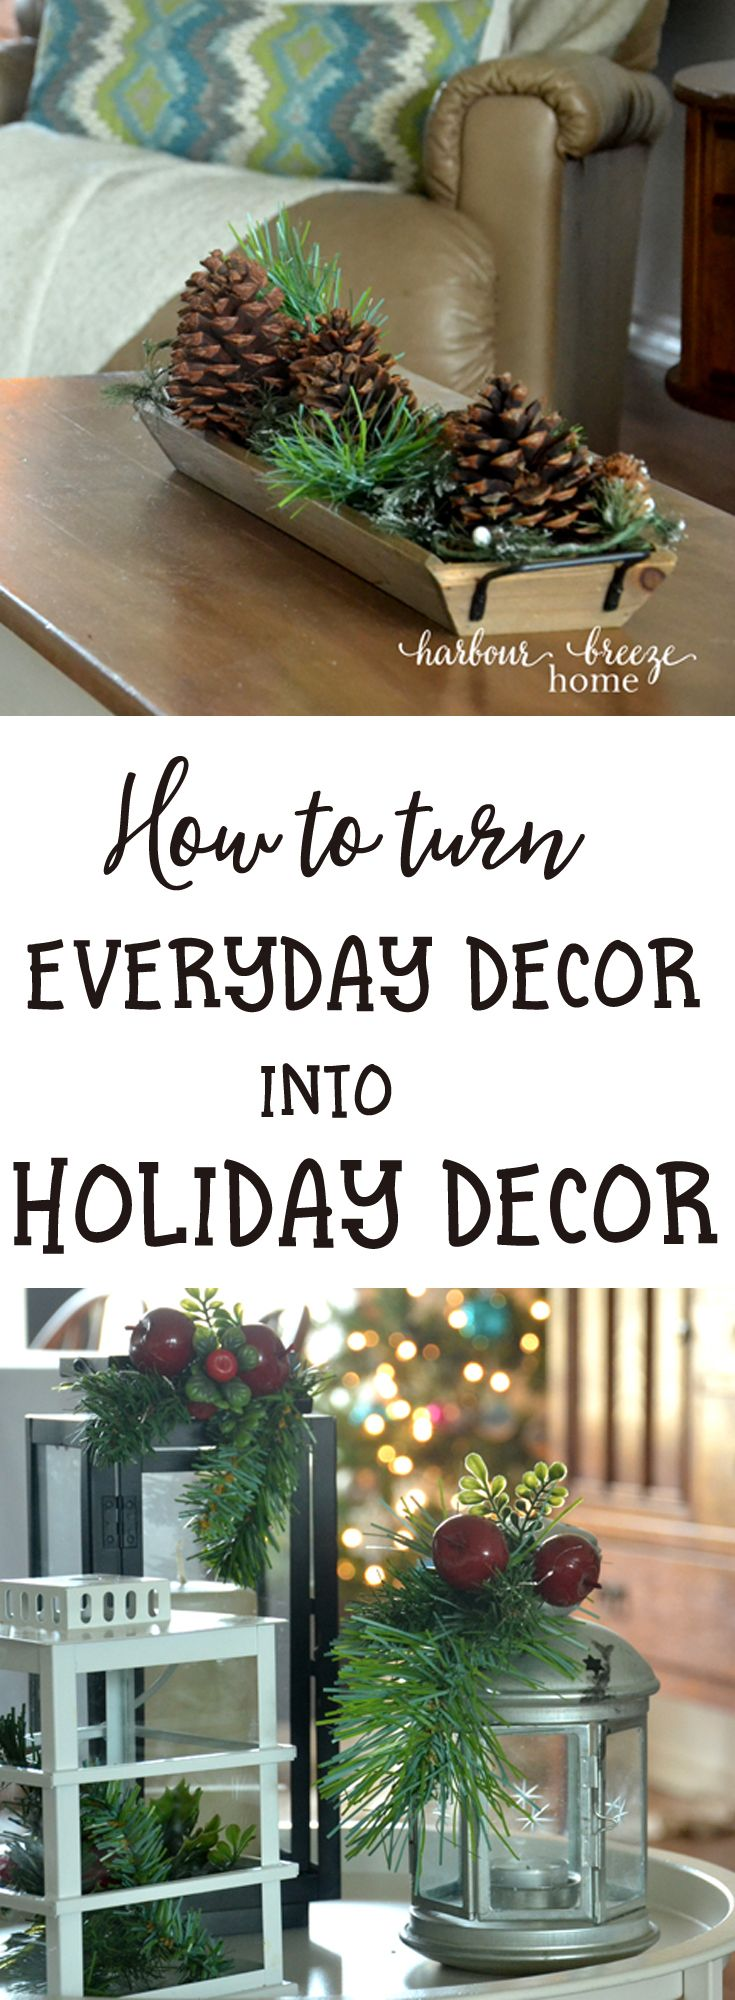 Decorating on a Budget : 3 Ways to turn Everyday Decor into Holiday ...